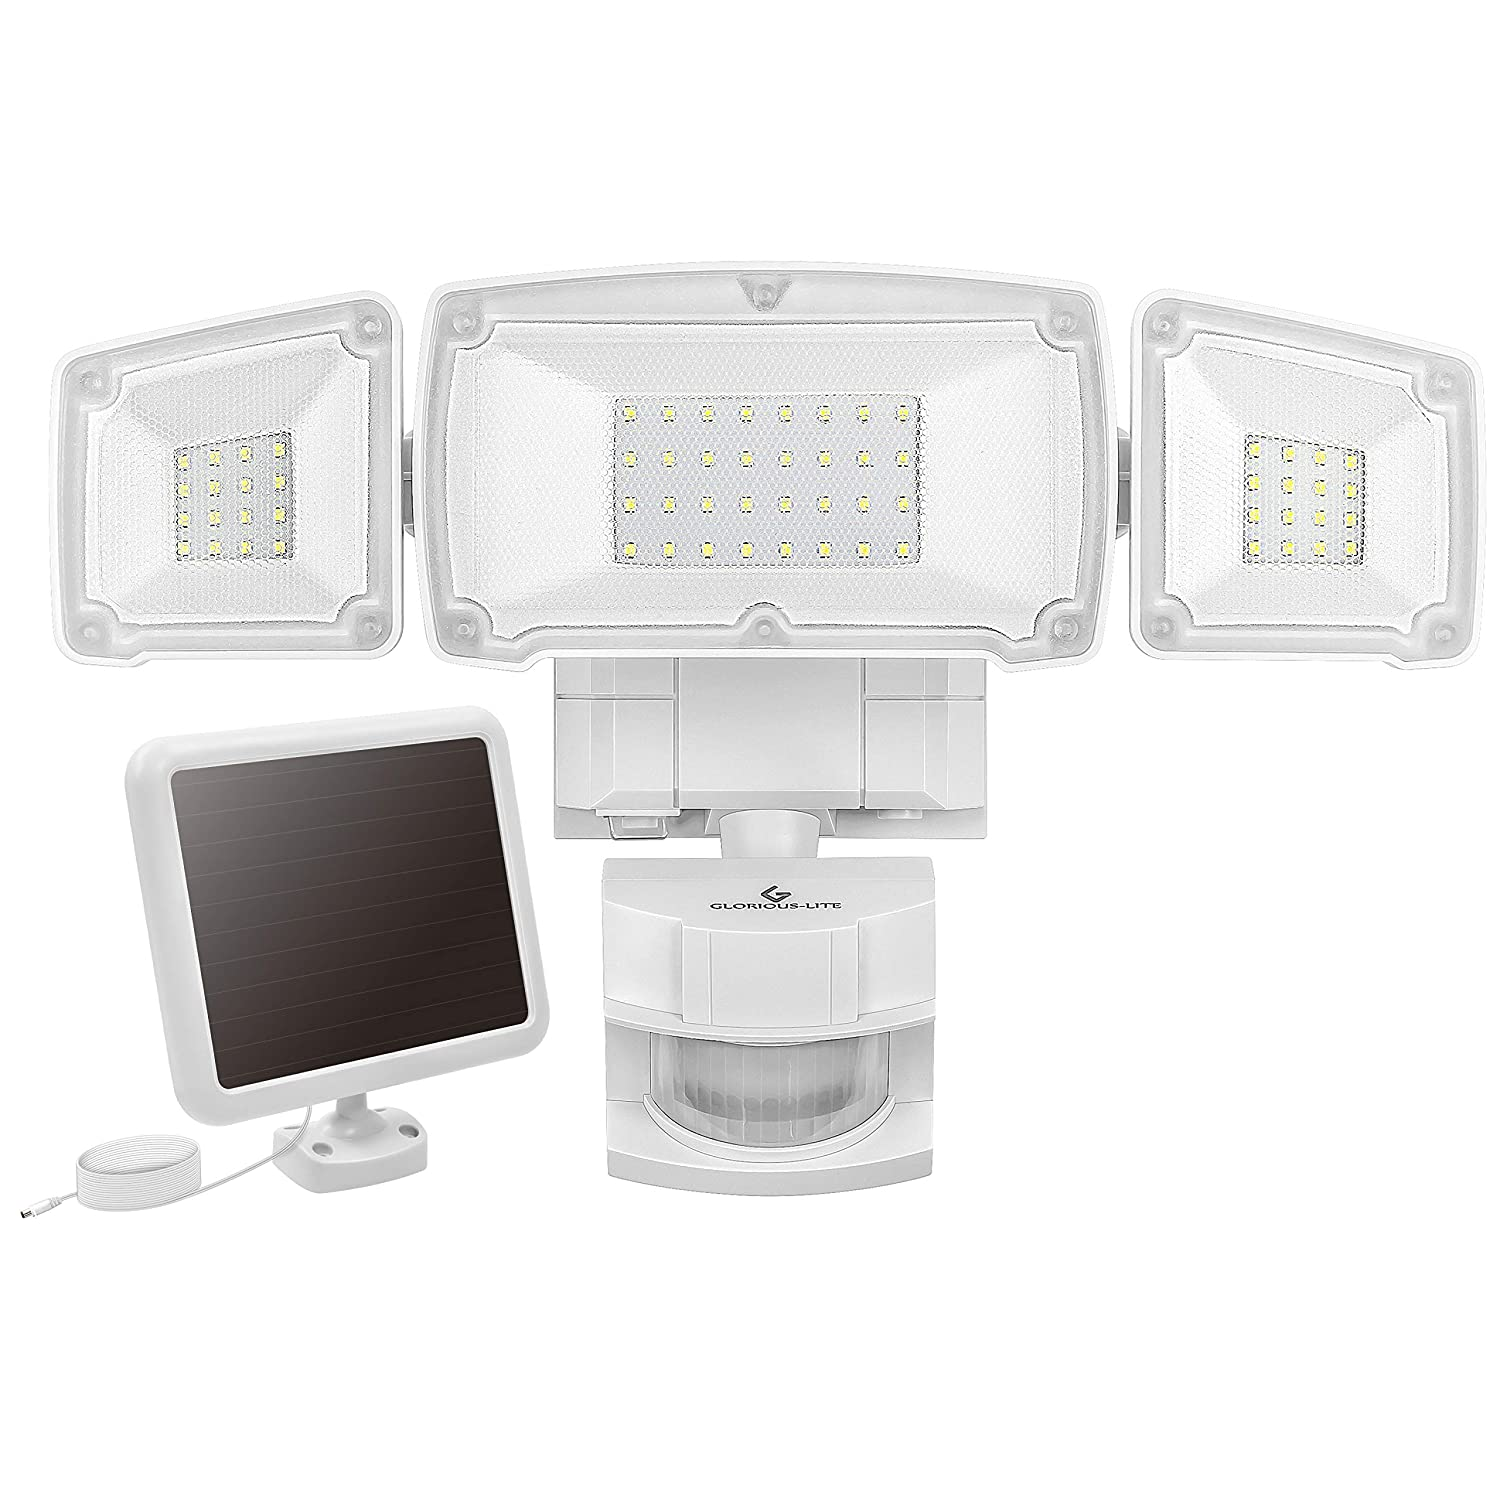 GLORIOUS-LITE Solar Security Light Outdoor, 1500LM Solar LED Motion Sensor Light with 3 Adjustable Head, 6000K, IP65 Waterproof Flood Light for Backyard, Pathway Patio